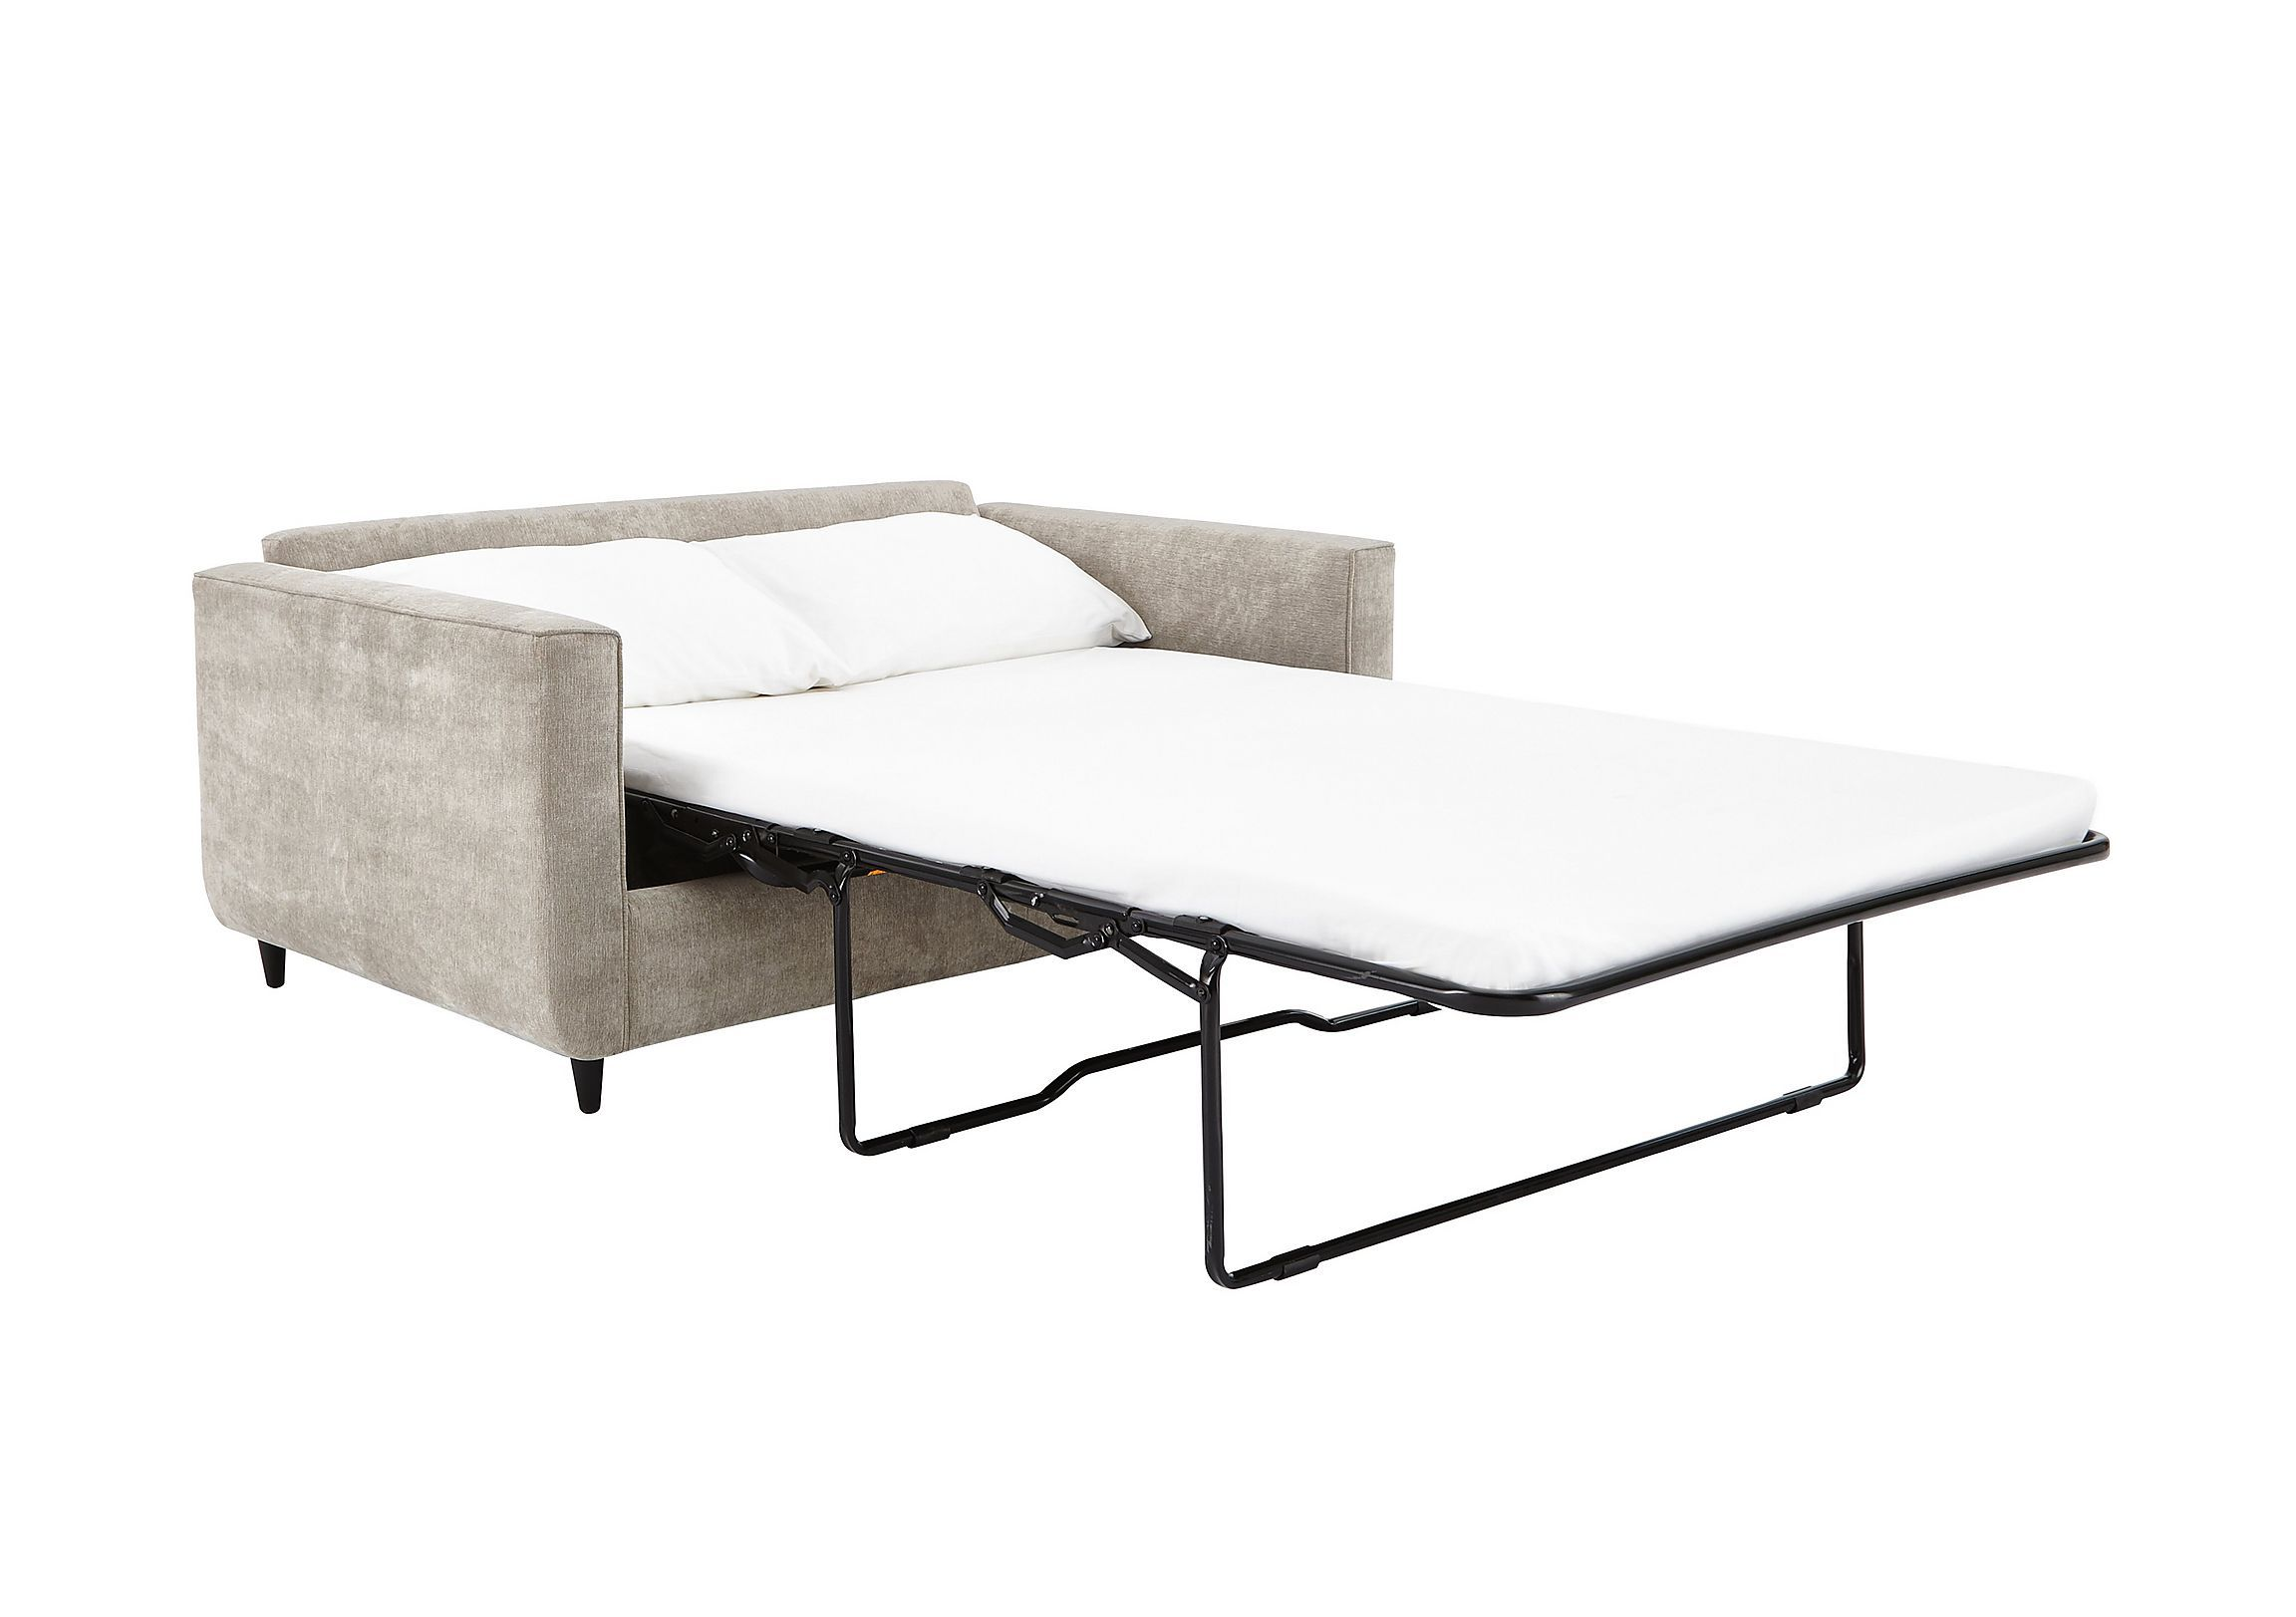 Excellent Esprit 2 Seater Fabric Sofa Bed Sale 699 Furniture Gmtry Best Dining Table And Chair Ideas Images Gmtryco